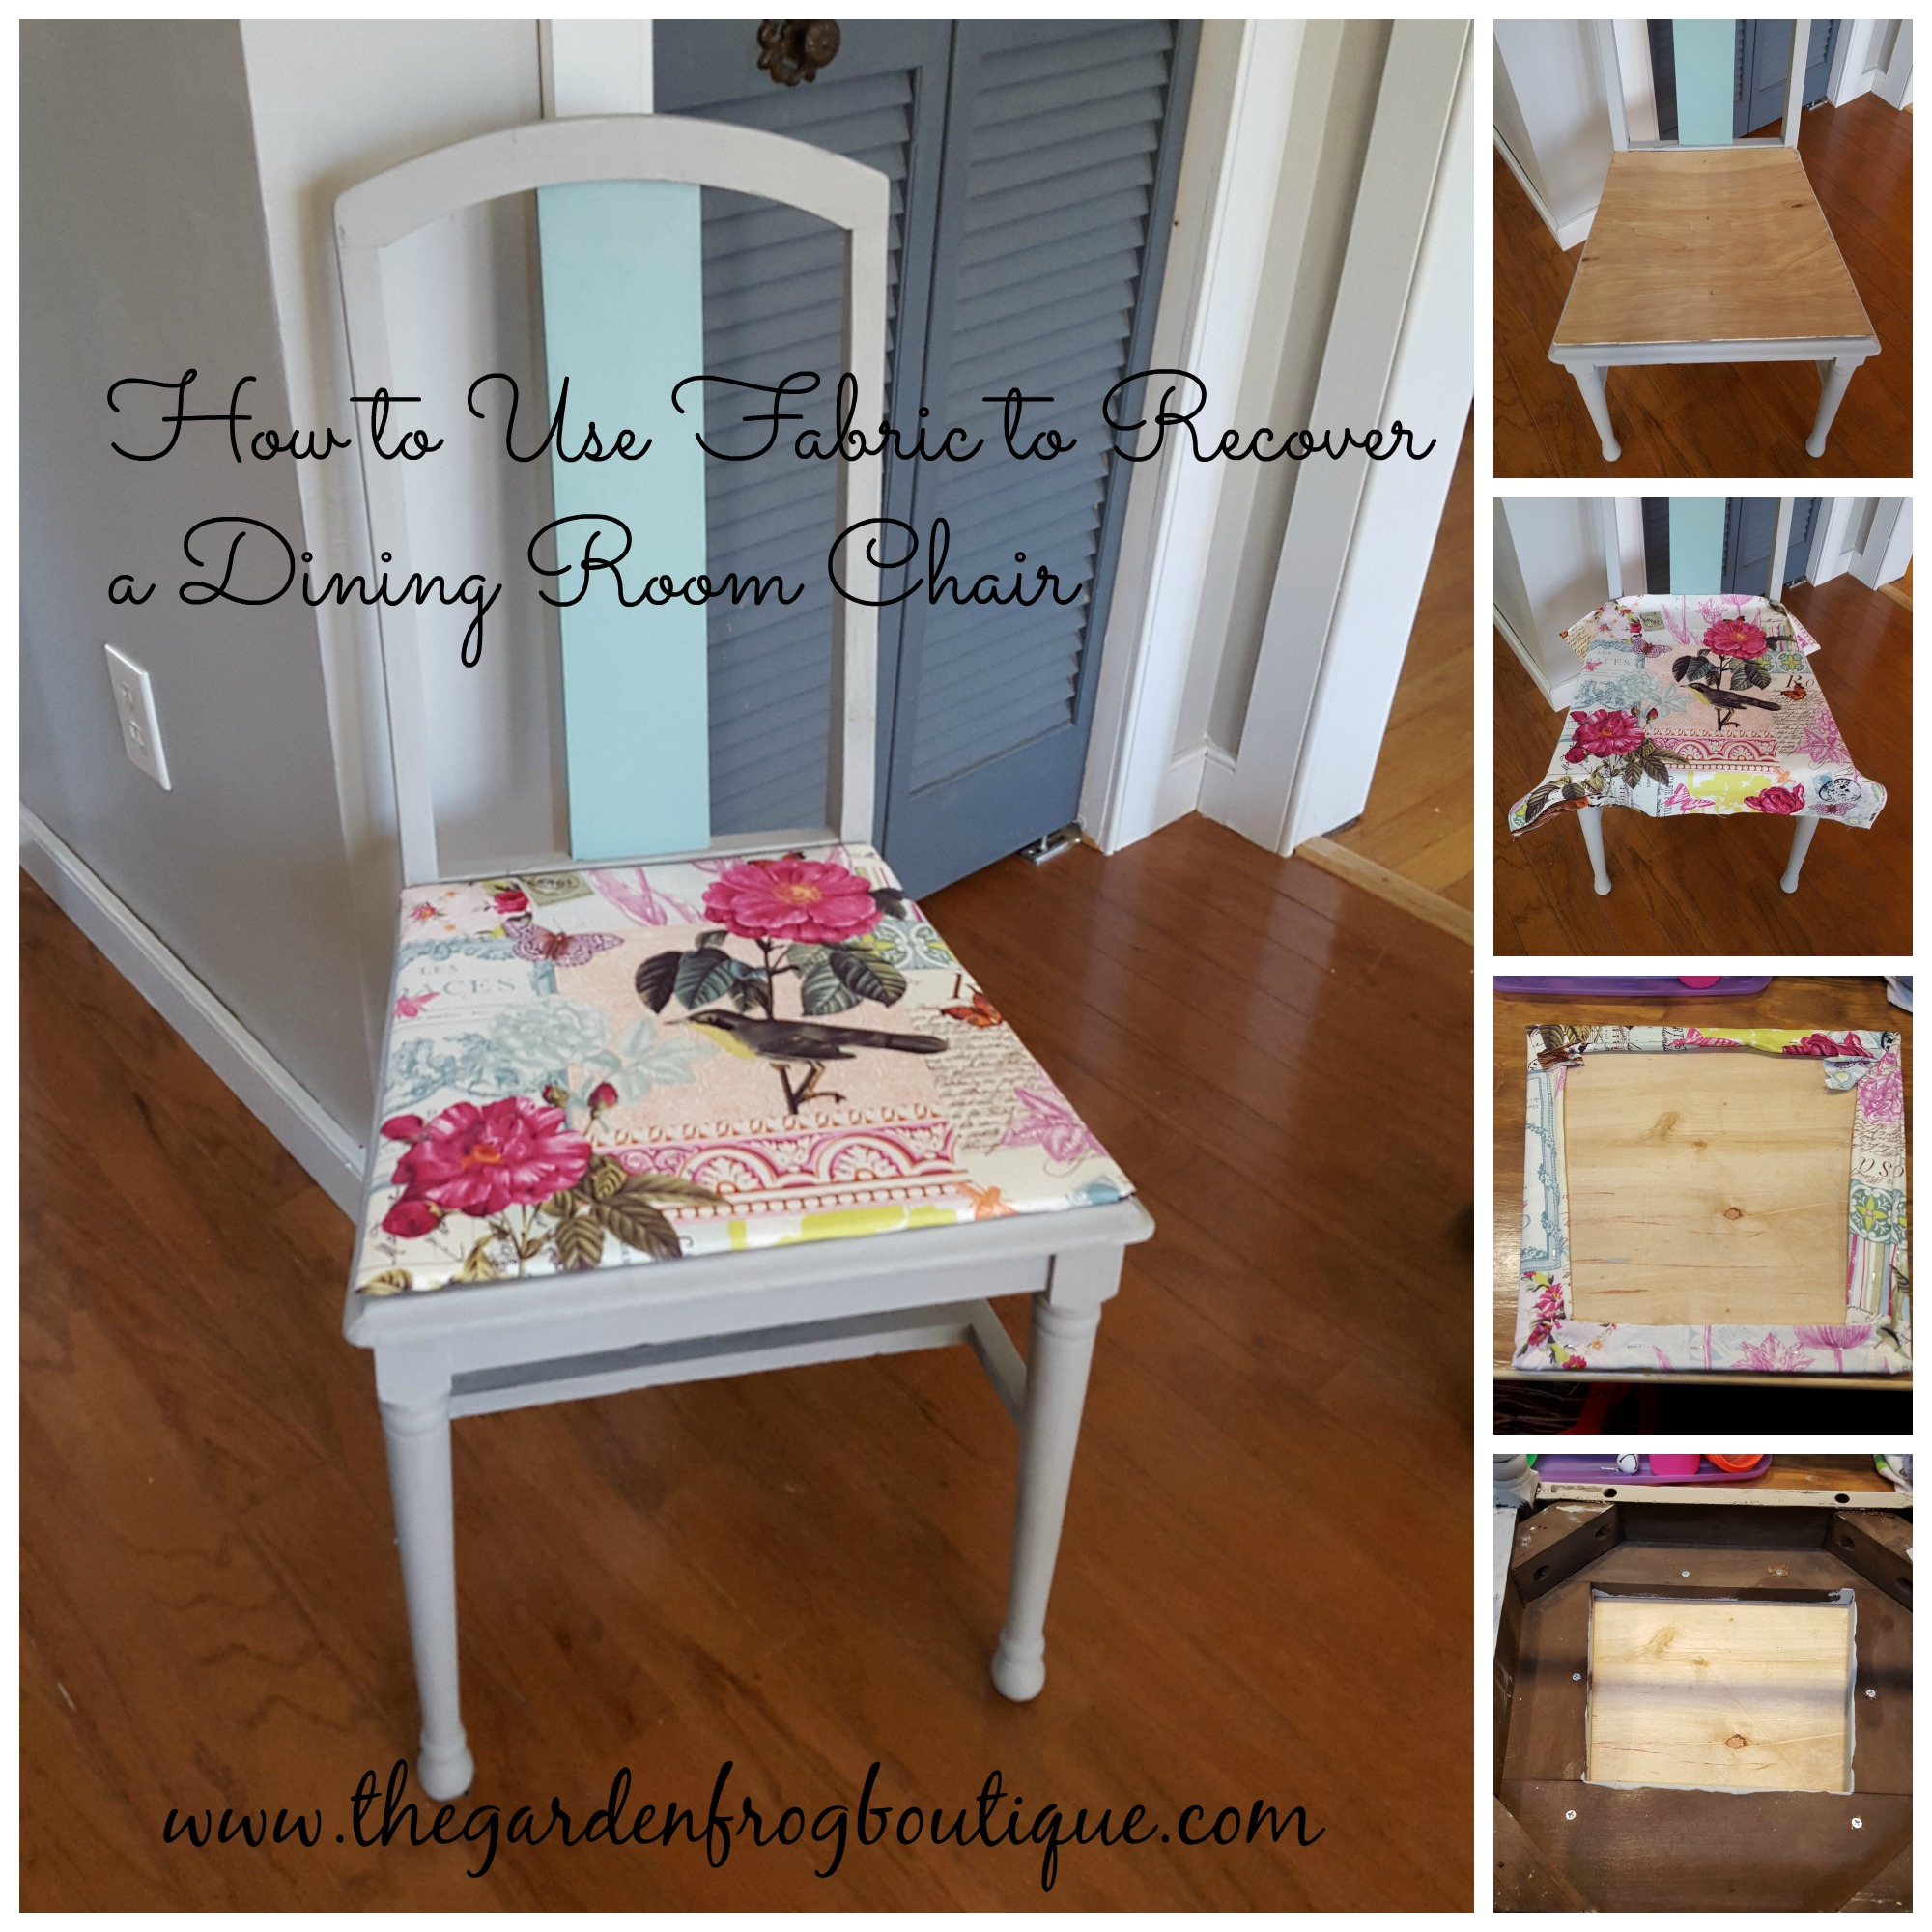 How To Use Fabric Recover A Dining Room Chair